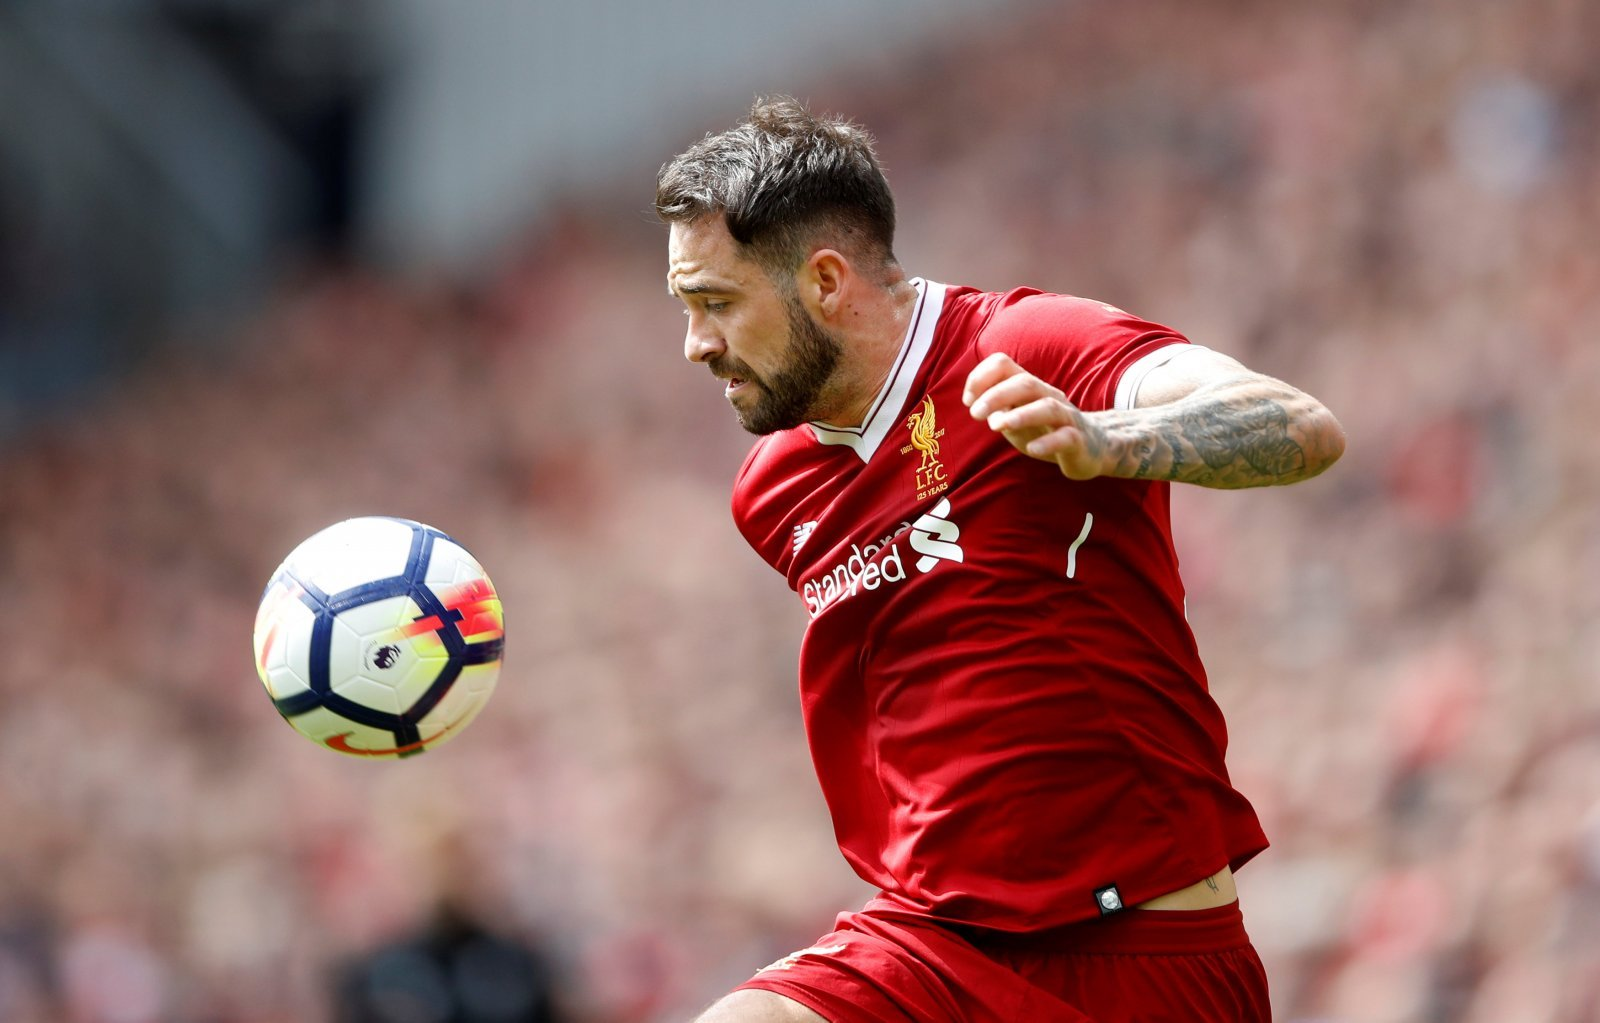 Liverpool fans on social media would love to ship Ings off to St Mary's